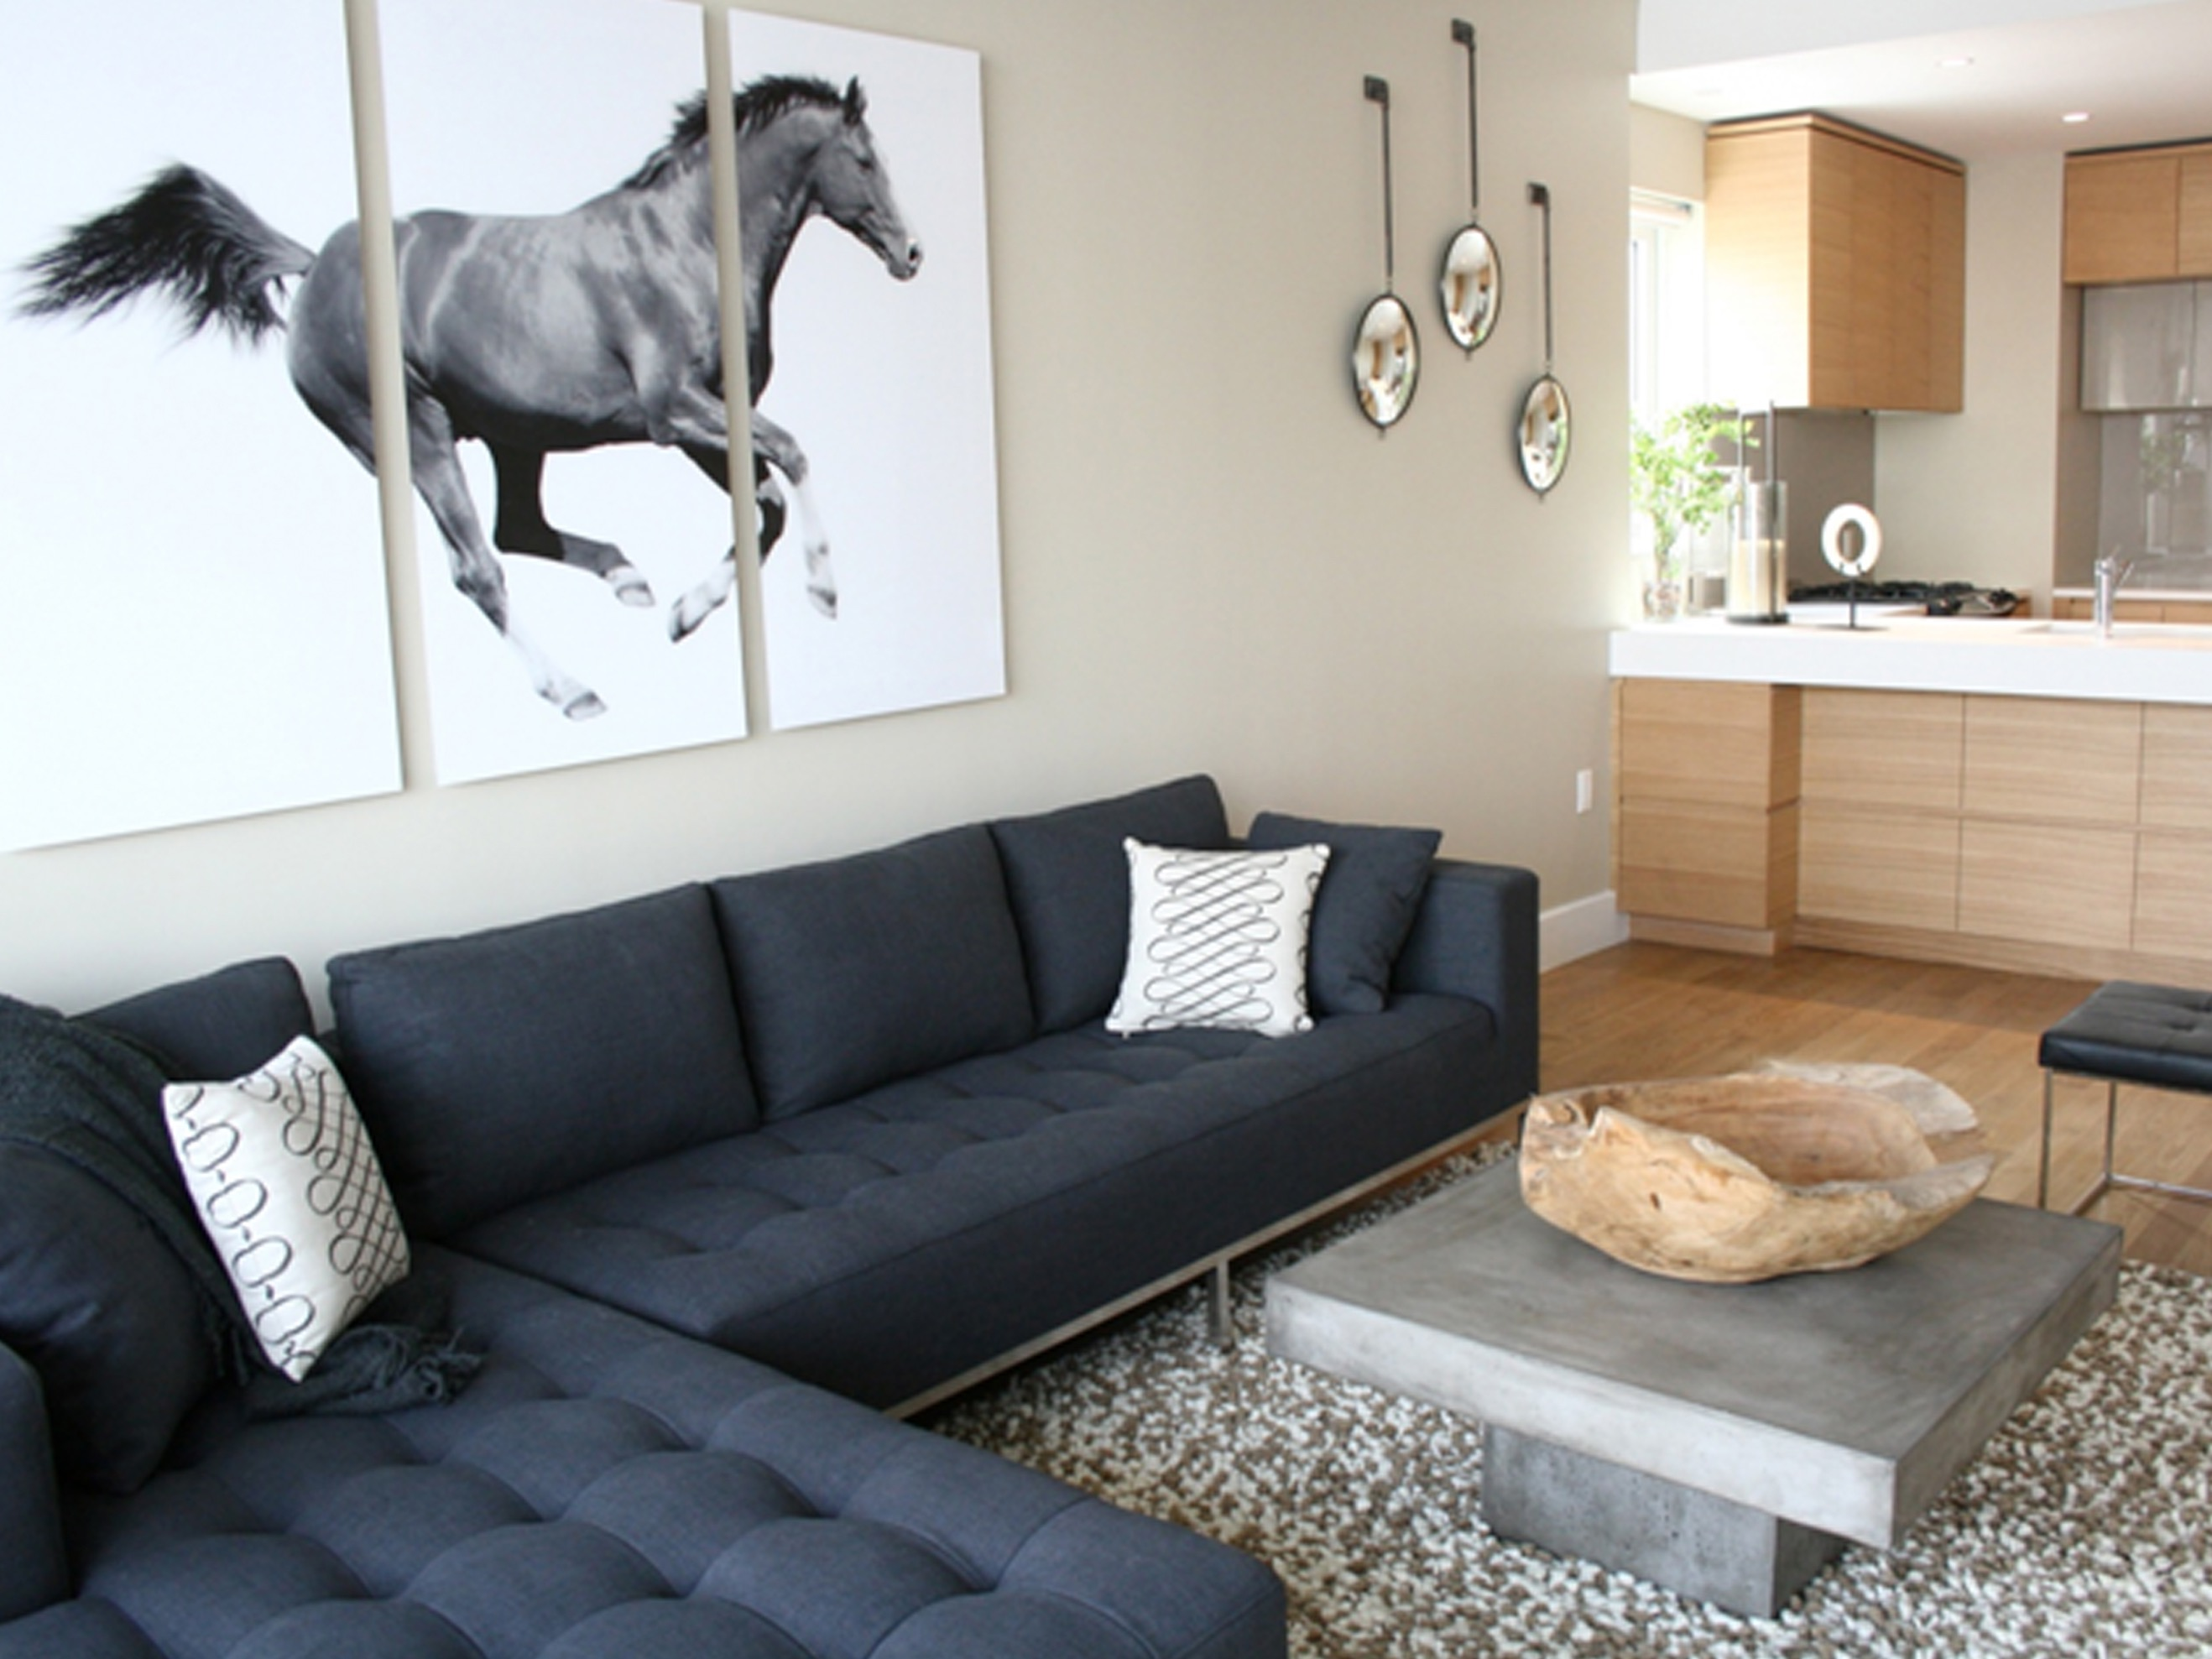 Modern Living Room With Over Sized Wall Art Decor (Image 19 of 30)